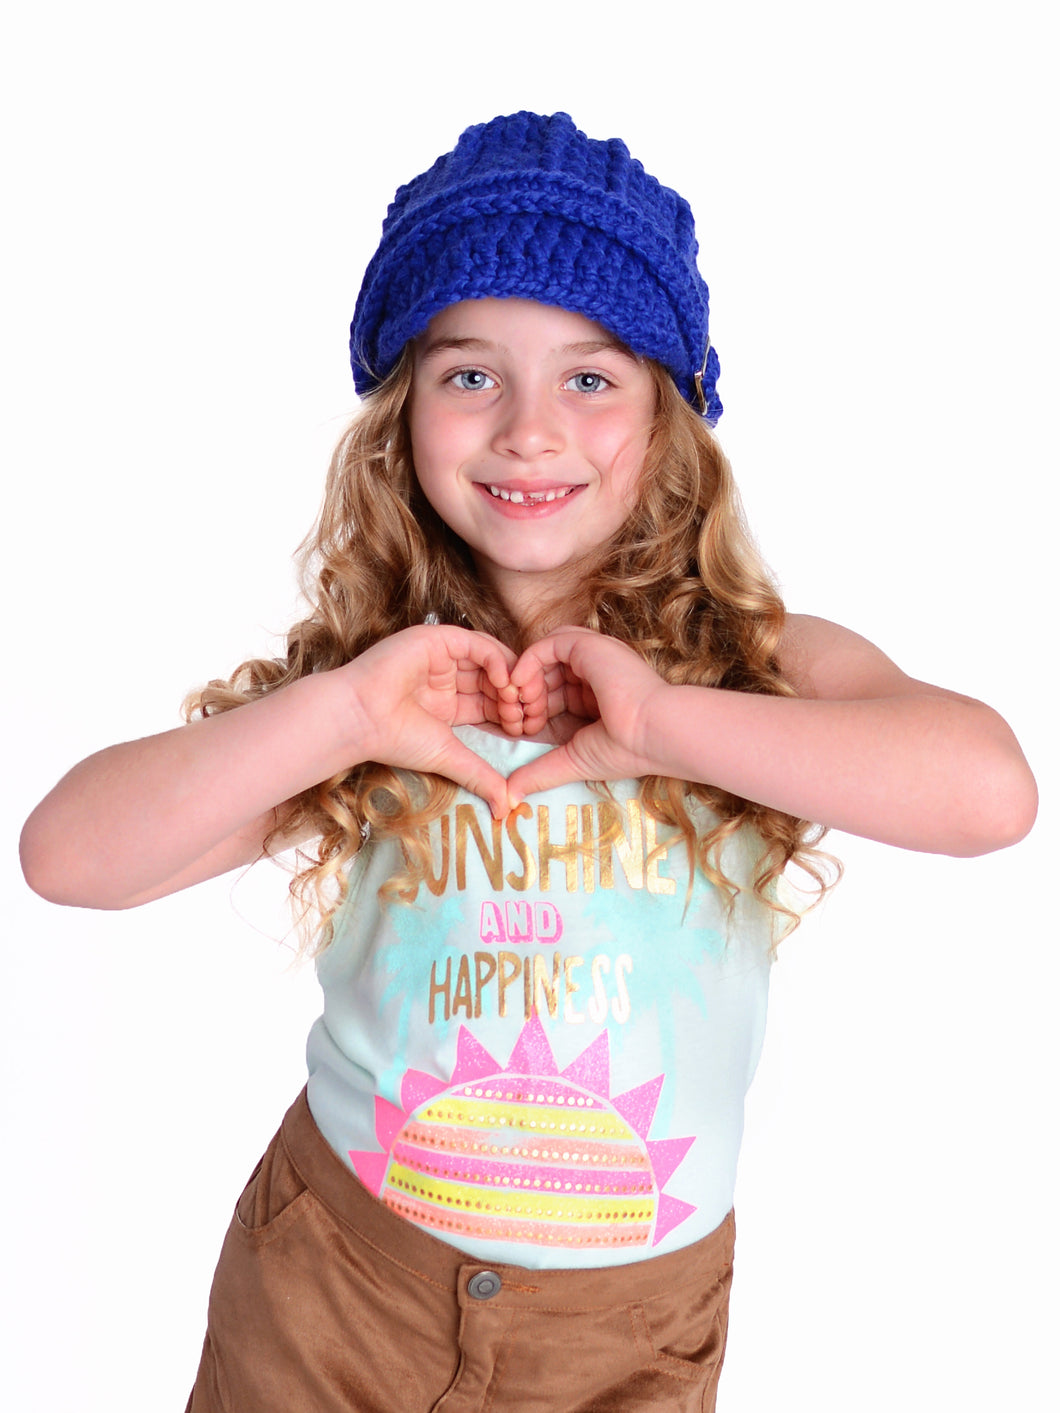 4T to Preteen Kids Cobalt Blue Buckle Beanie by Two Seaside Babes